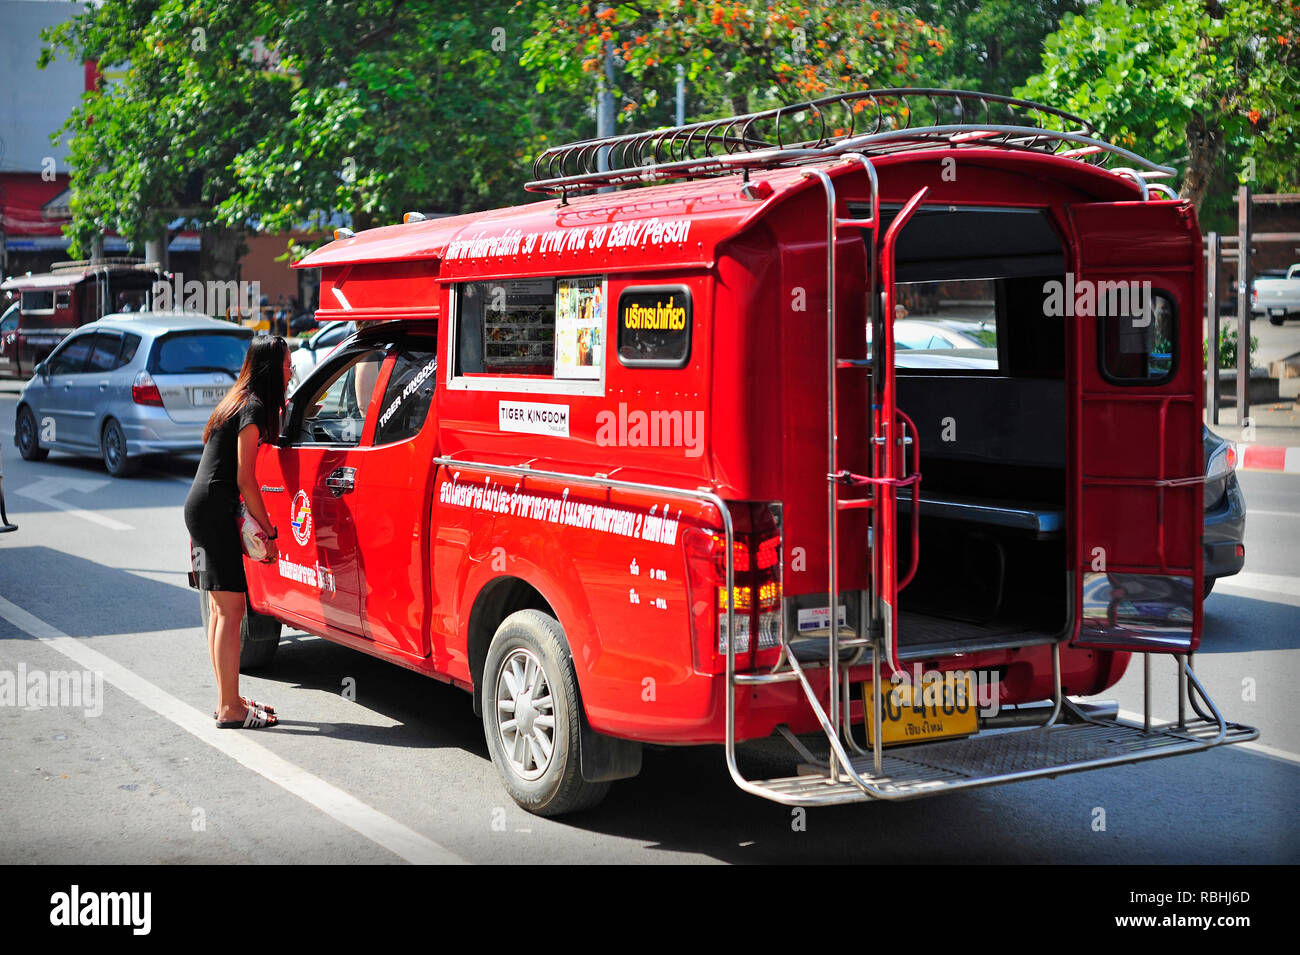 Songthaew Red Bus Chiang Mai Thailand - Stock Image